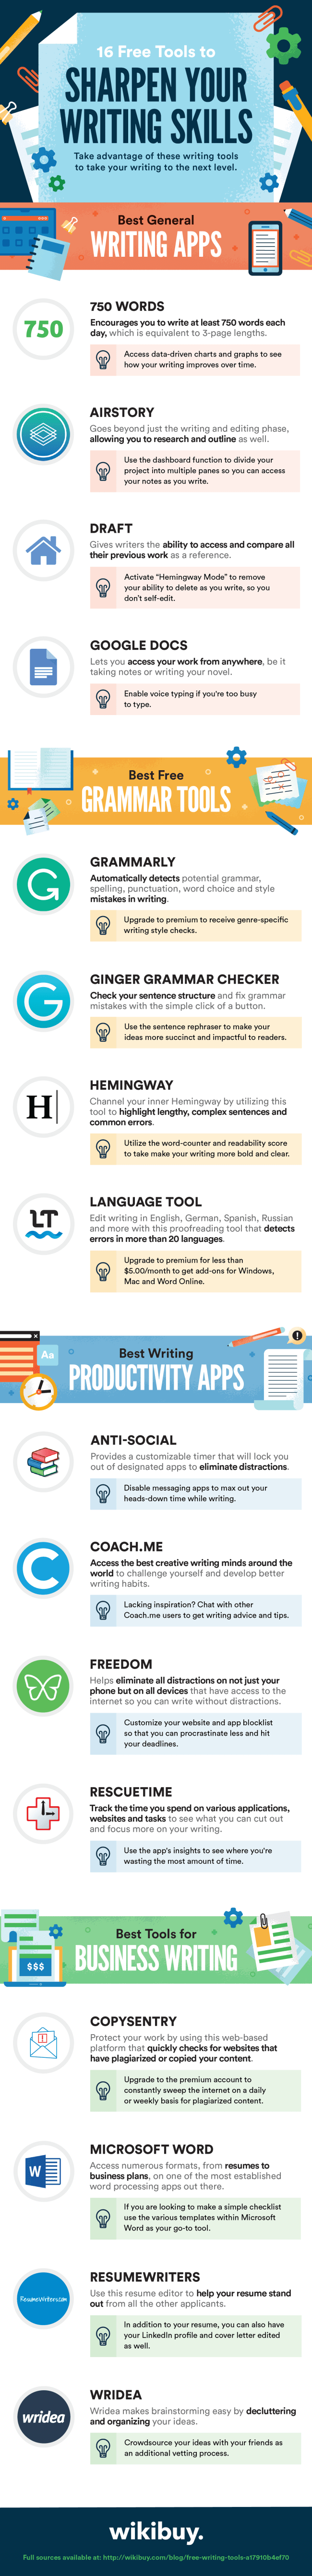 25 Free Tools to Improve Your Writing in 2020